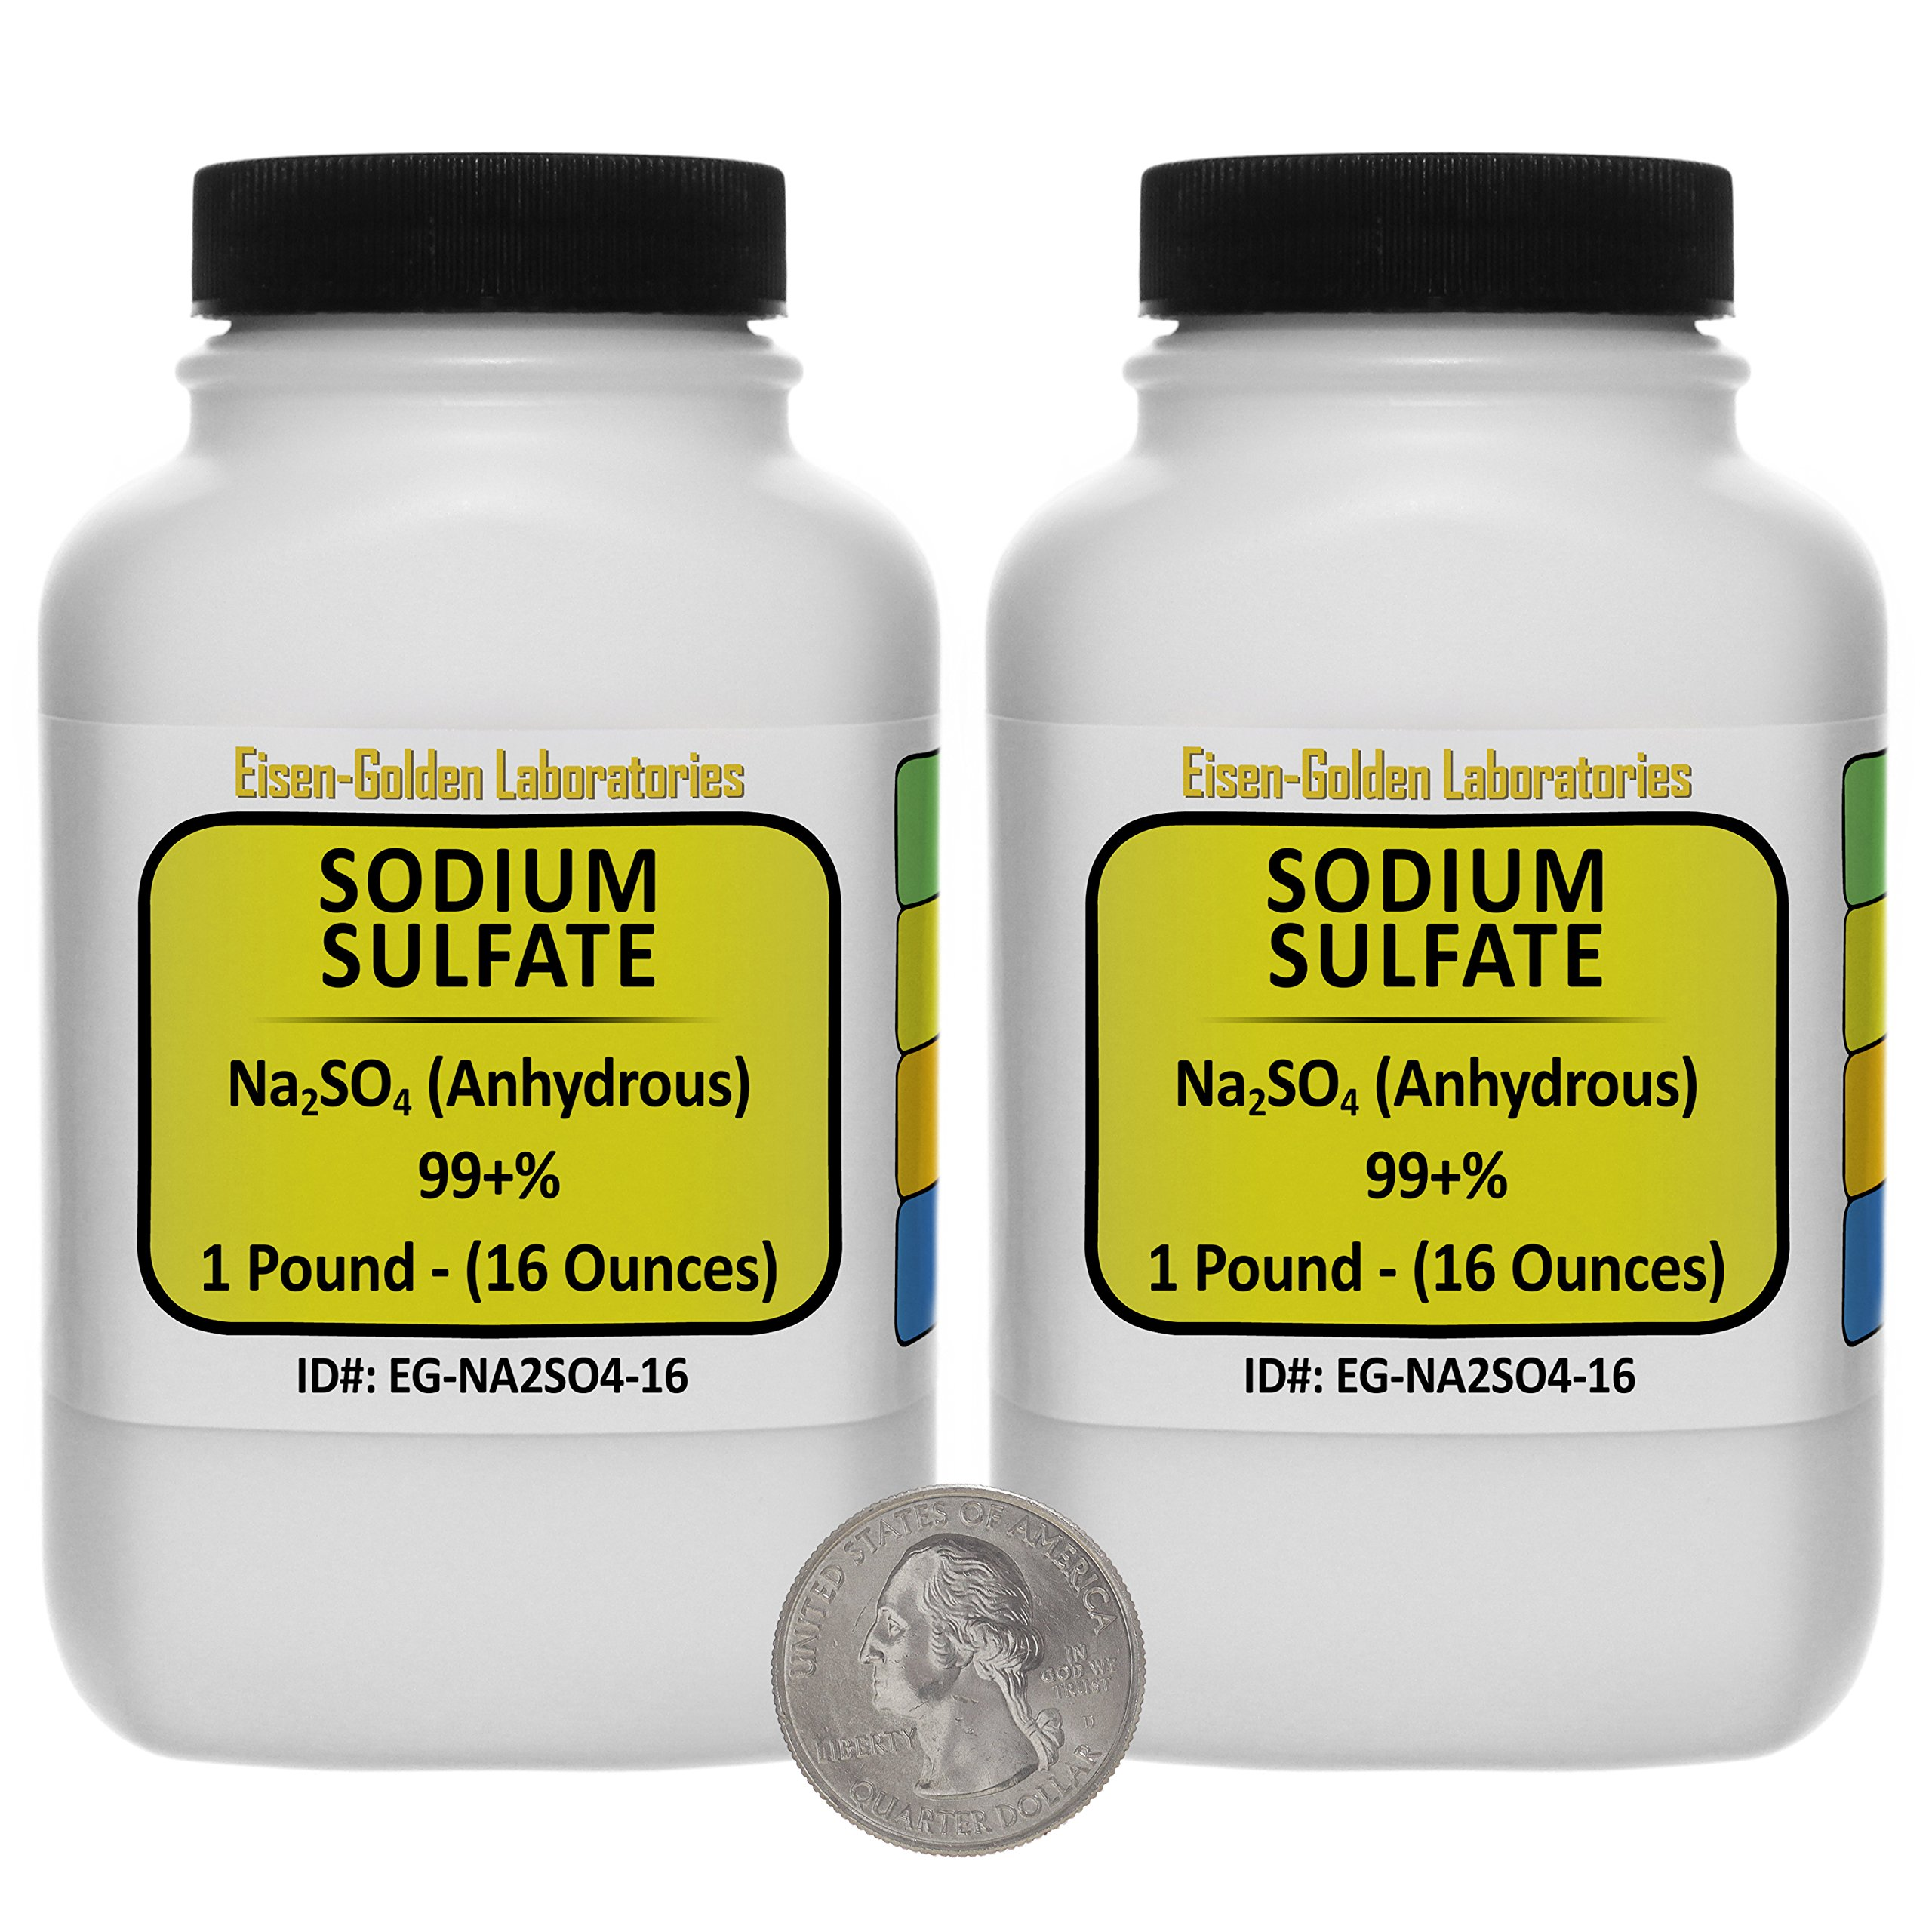 Sodium Sulfate [Na2SO4] 99+% ACS Grade Powder 2 Lb in Two Space-Saver Bottles USA